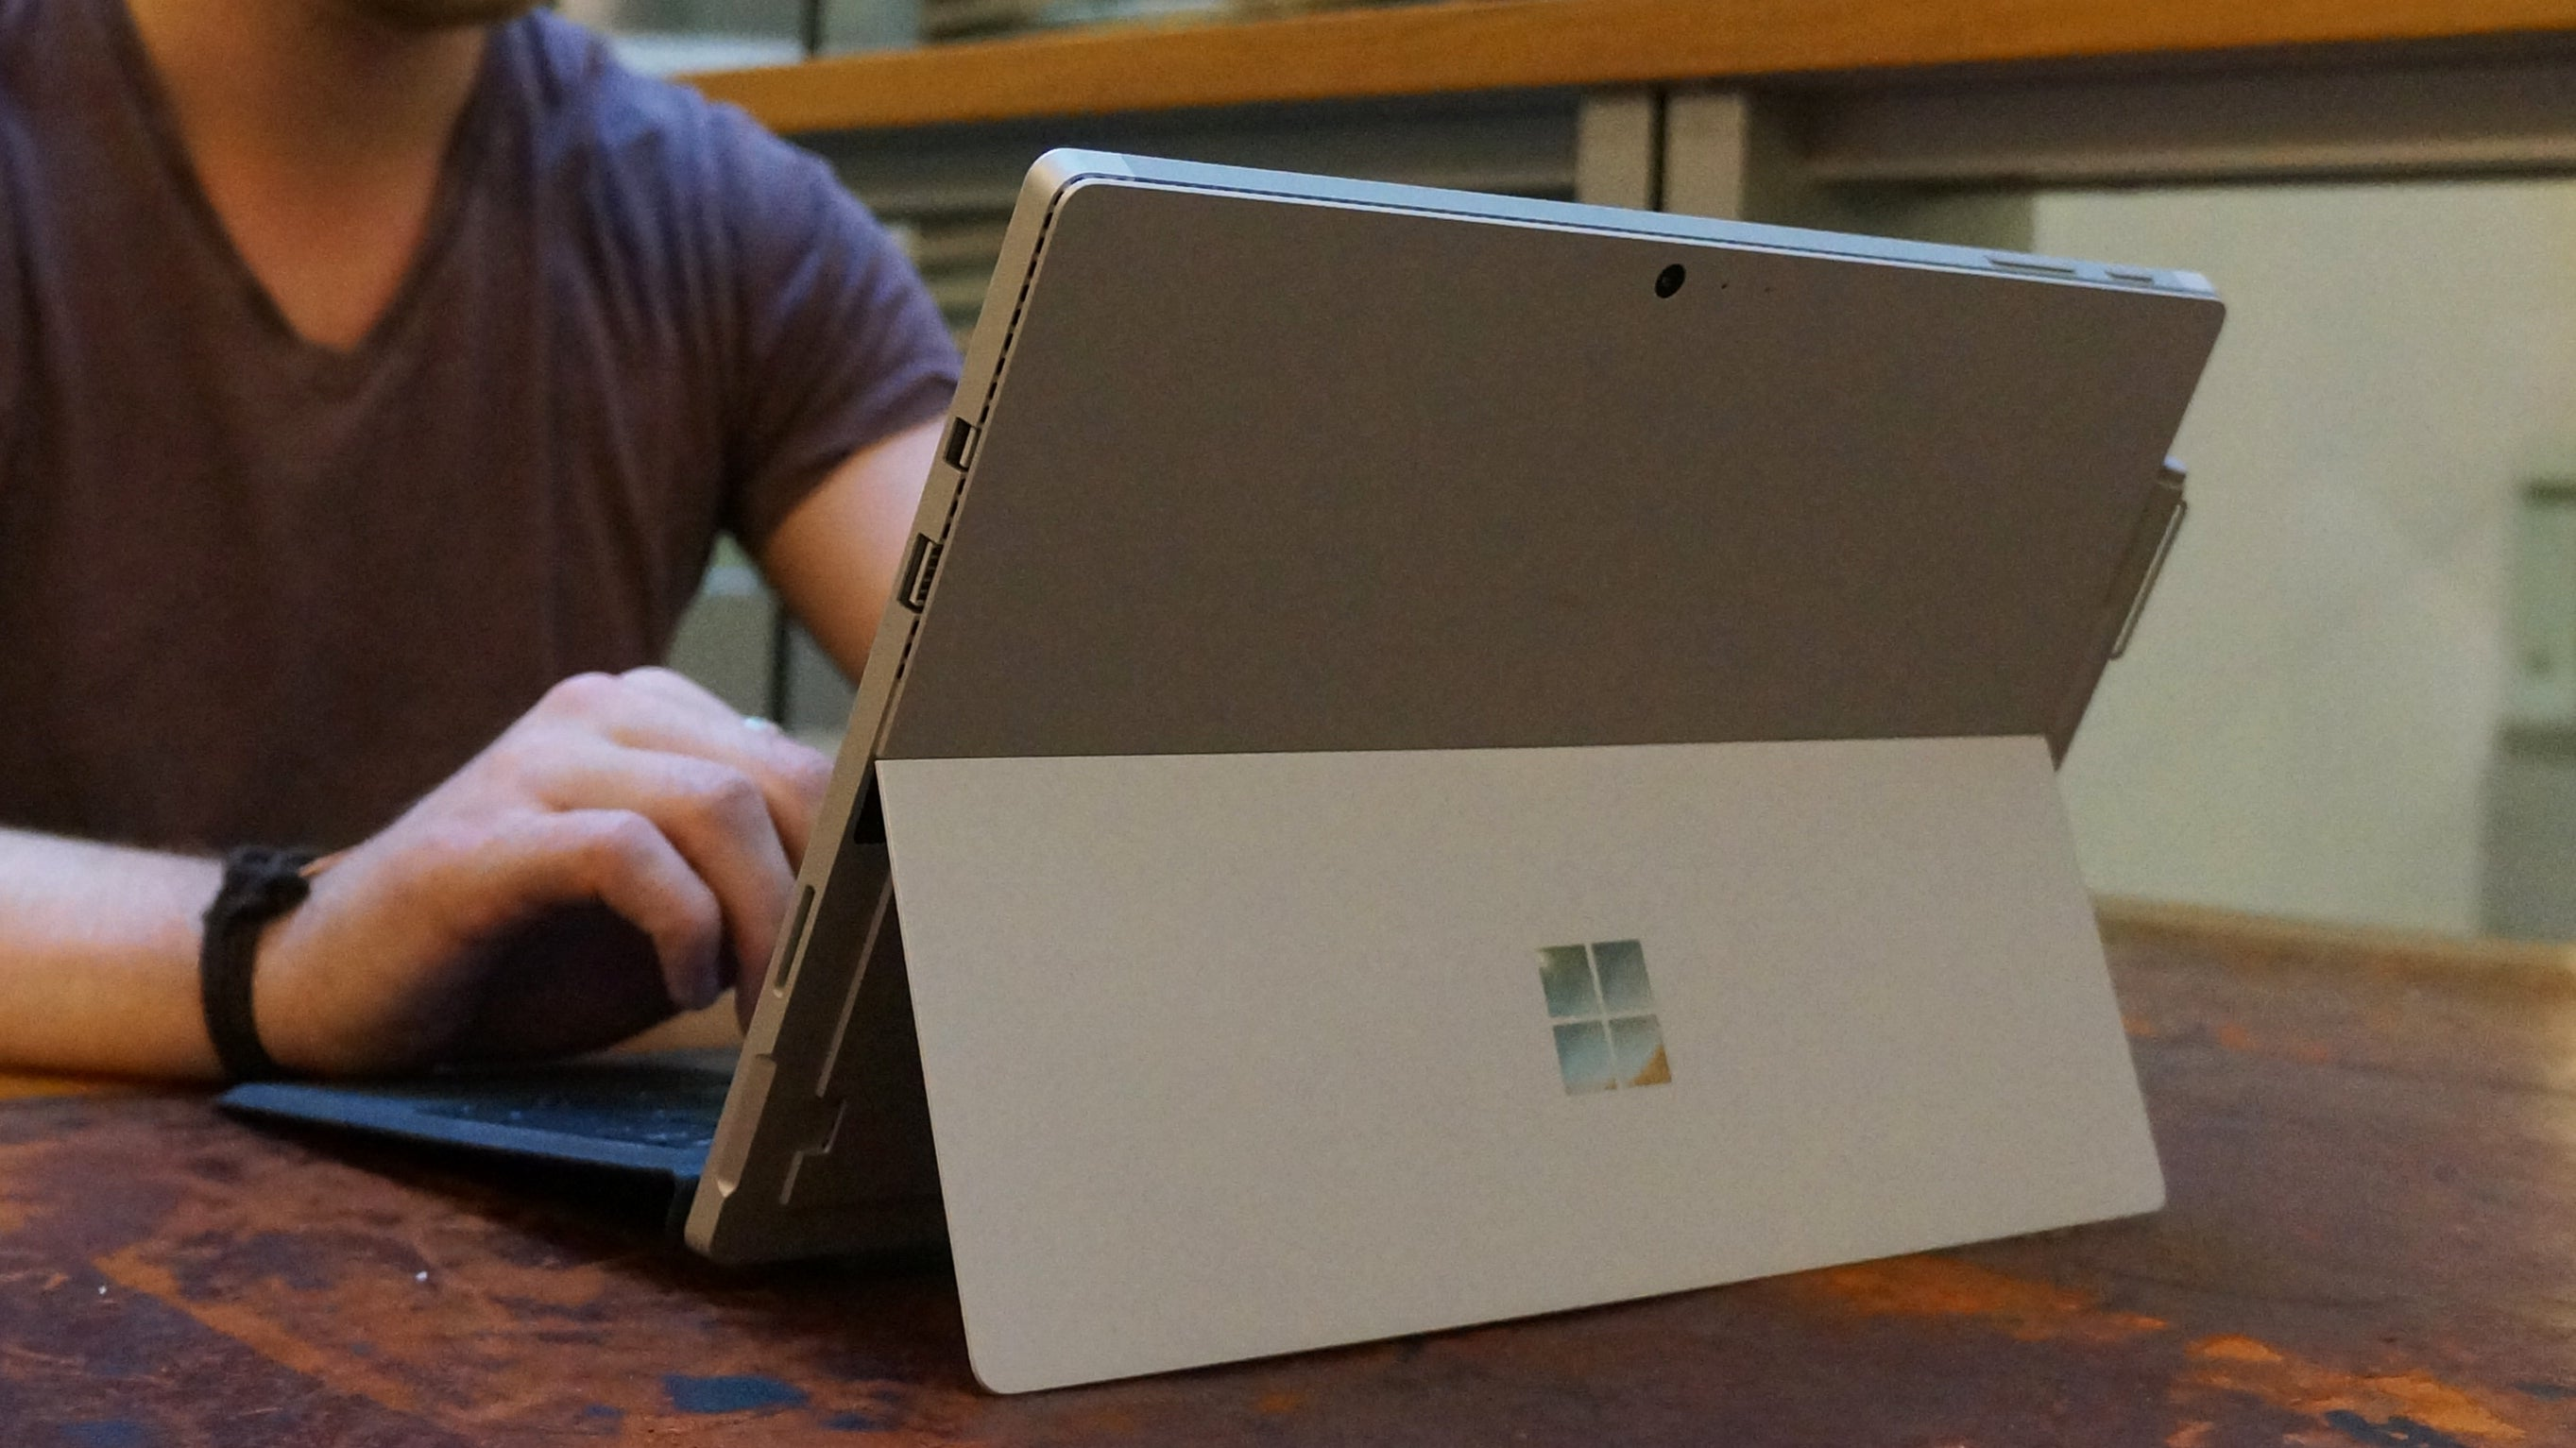 Microsoft Surface Pro 4 Review | Trusted Reviews